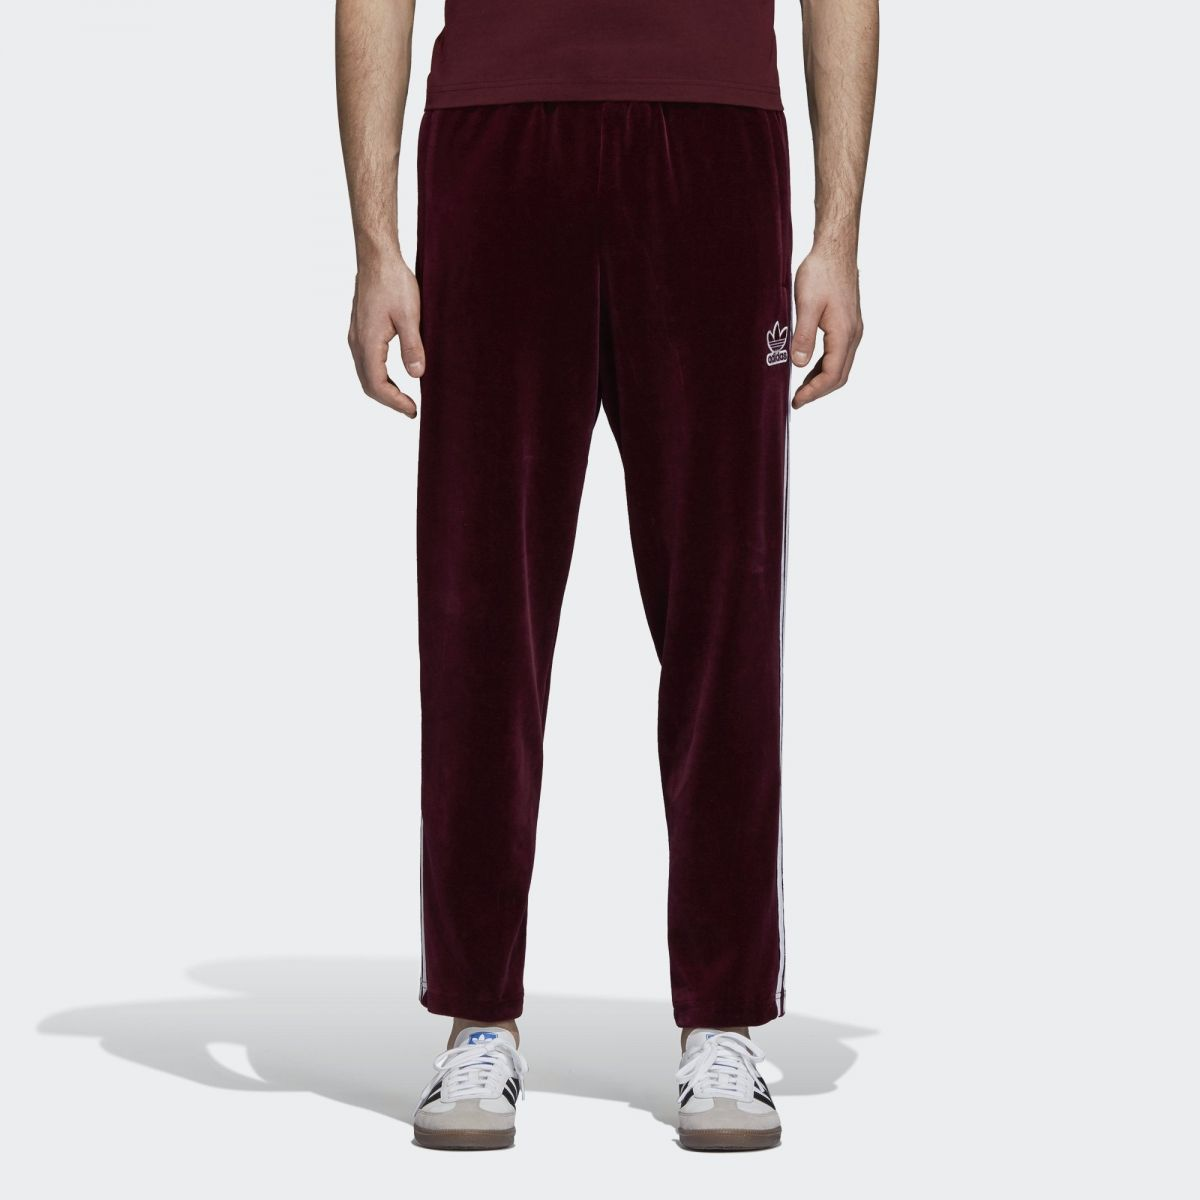 Type Pants adidas Originals Velour BB Track Pants